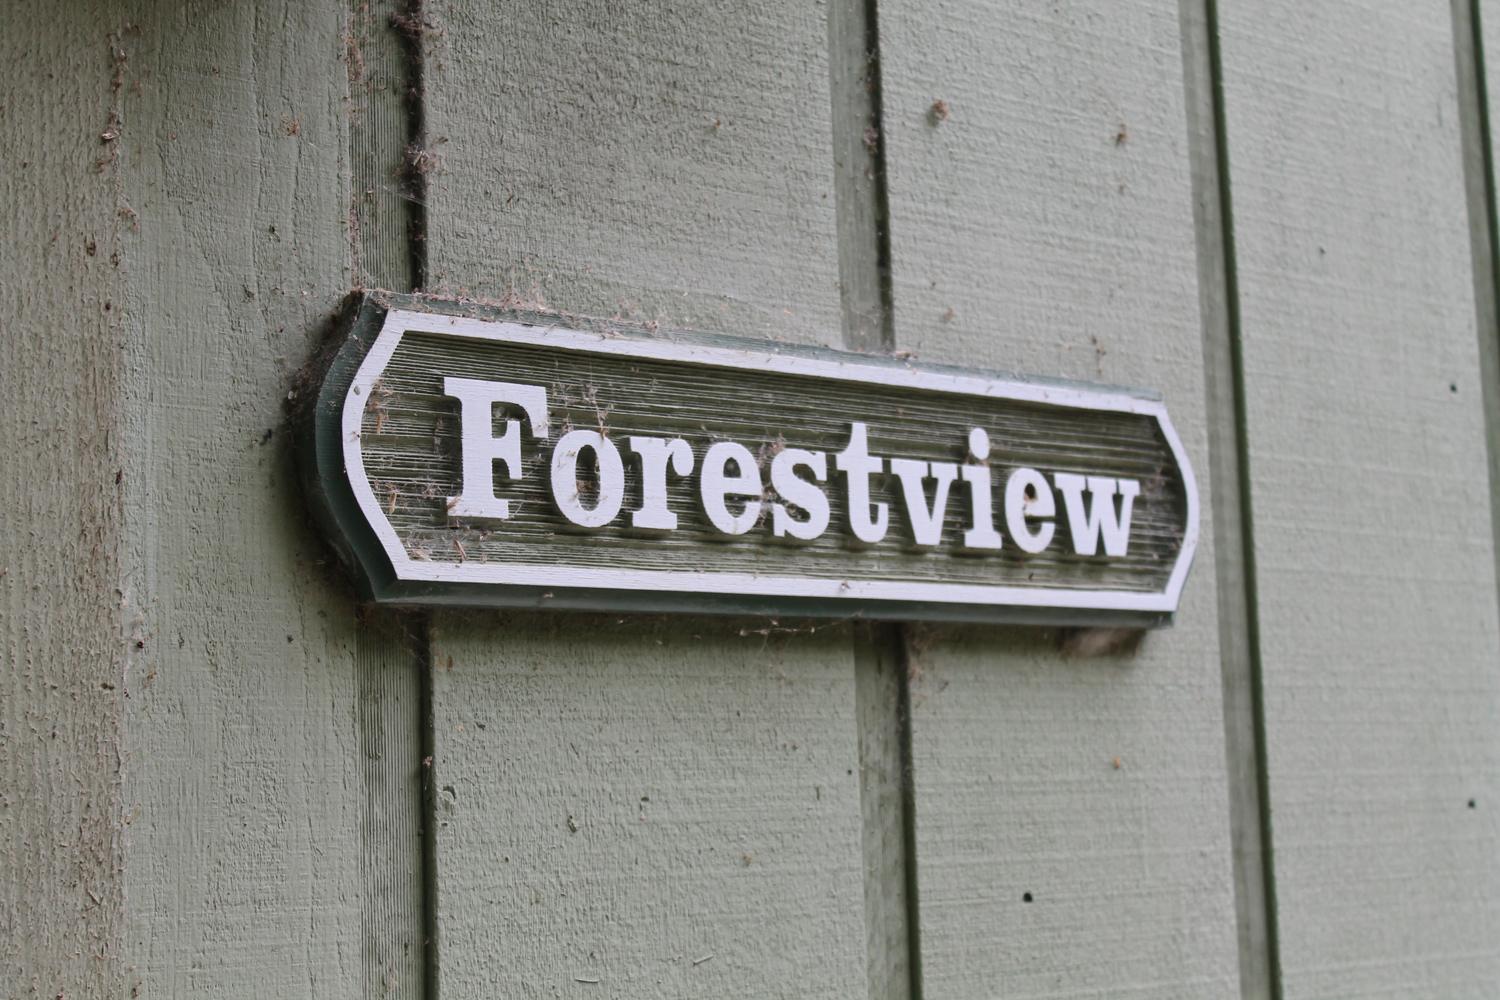 Forestview - A family reunion and office staff retreat favorite!